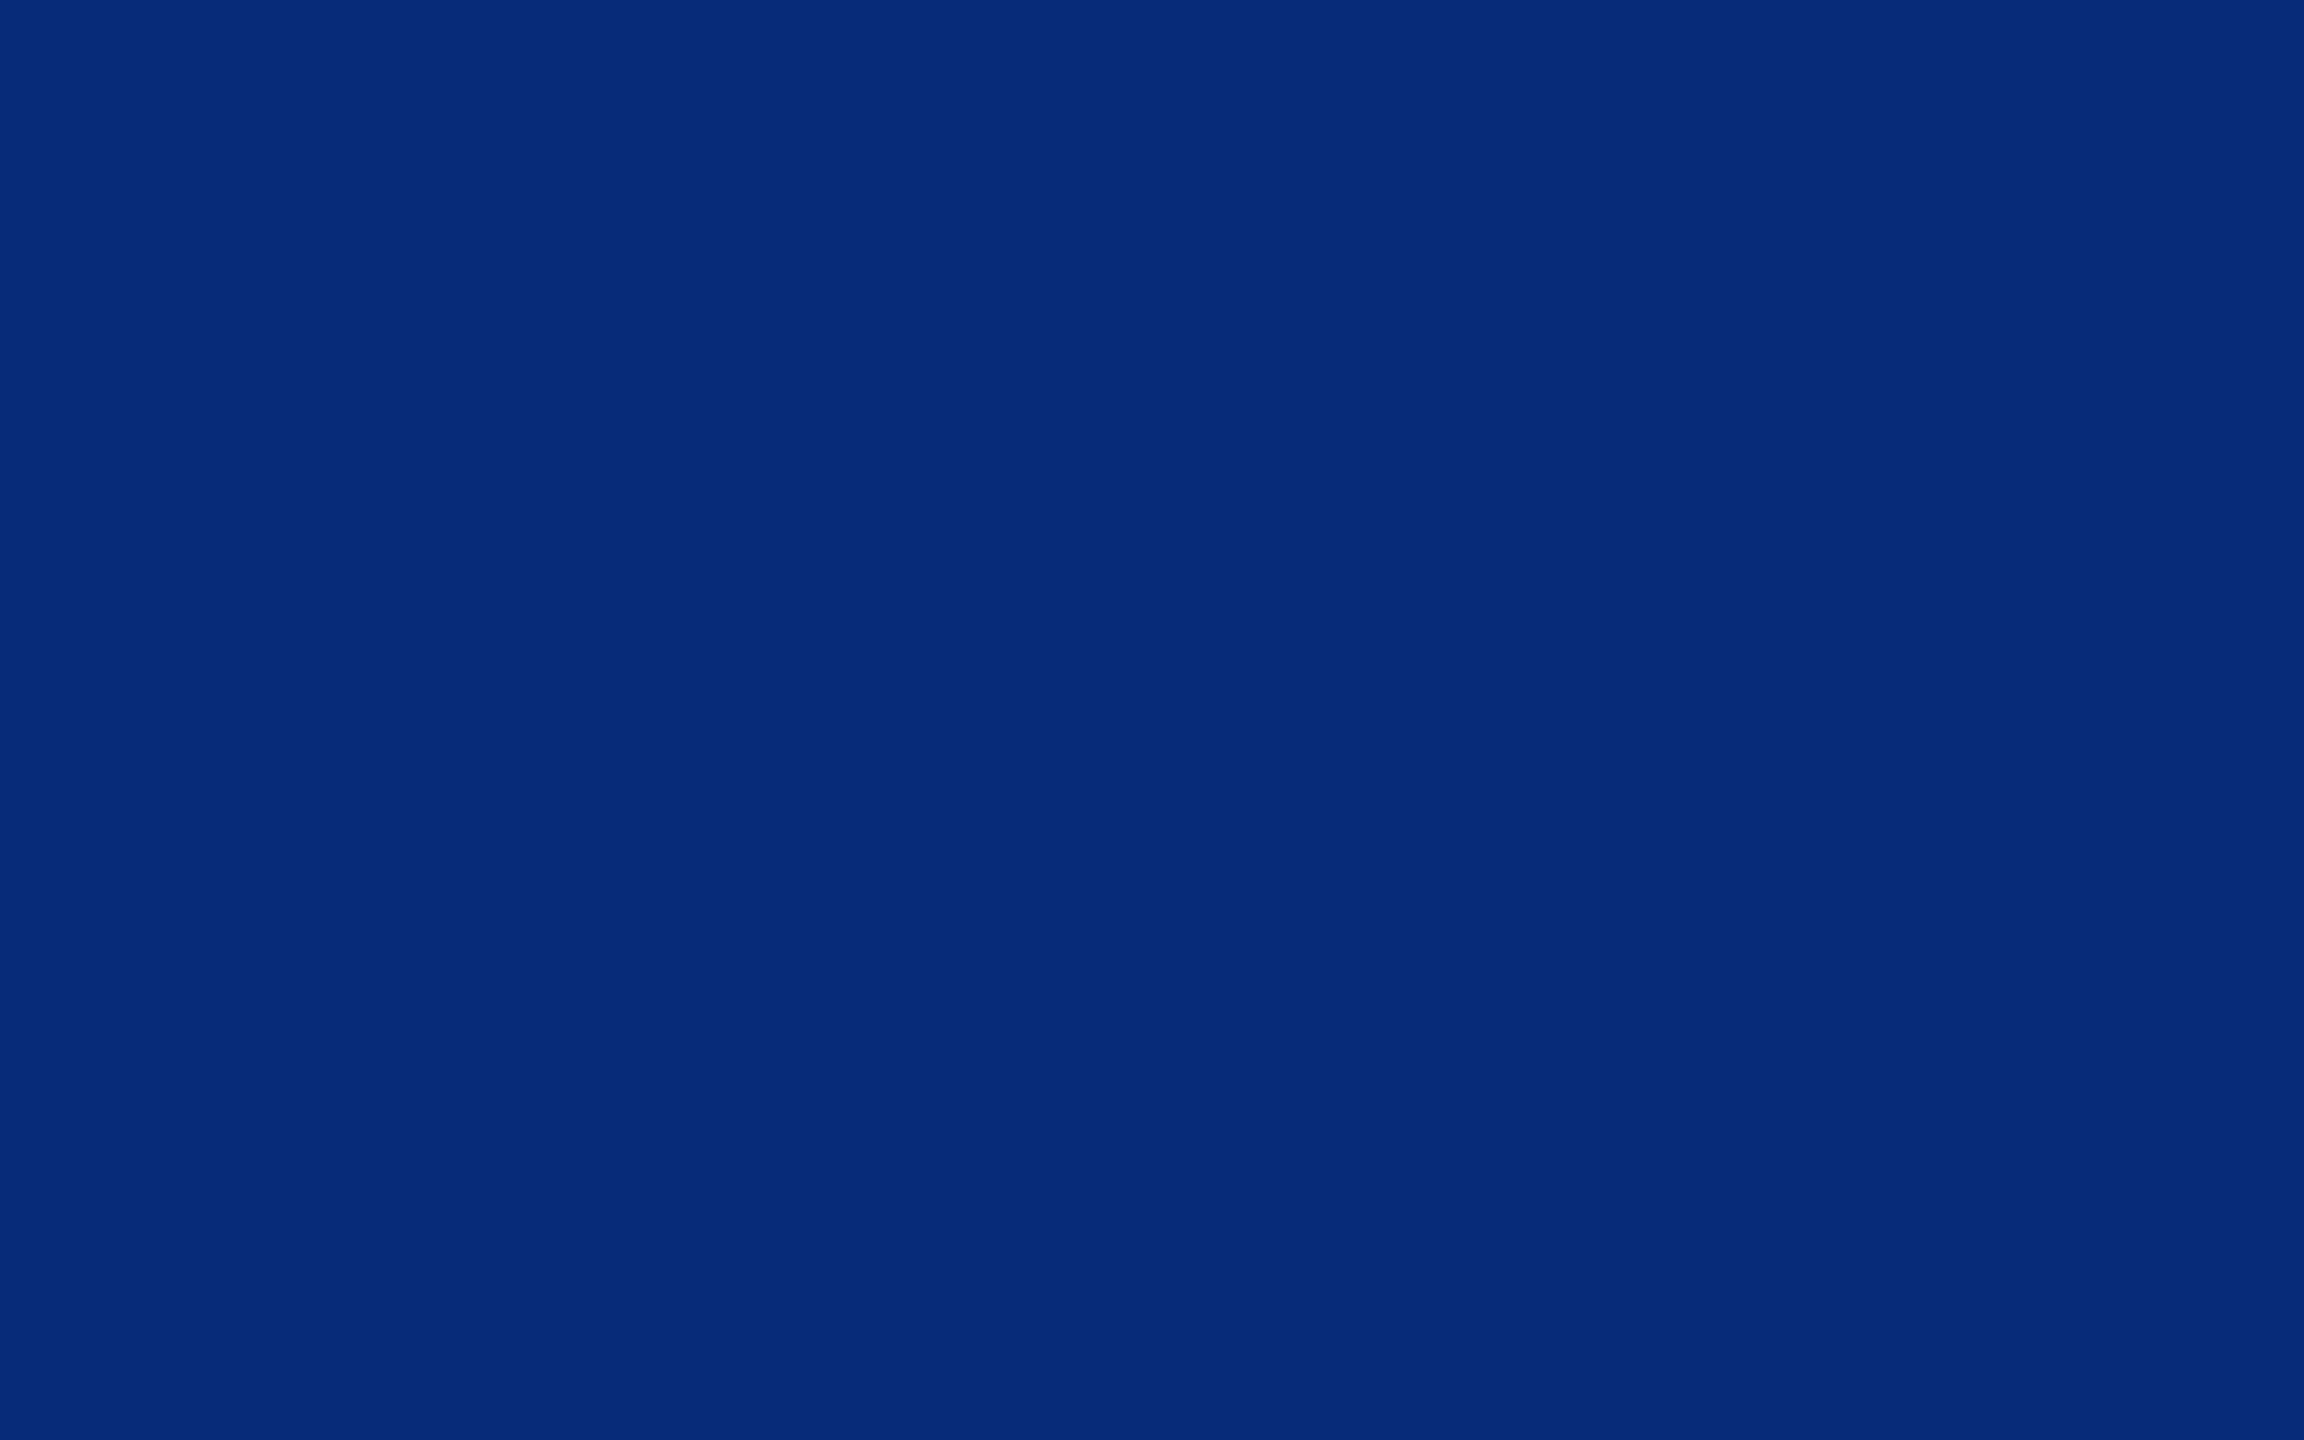 2304x1440 Catalina Blue Solid Color Background